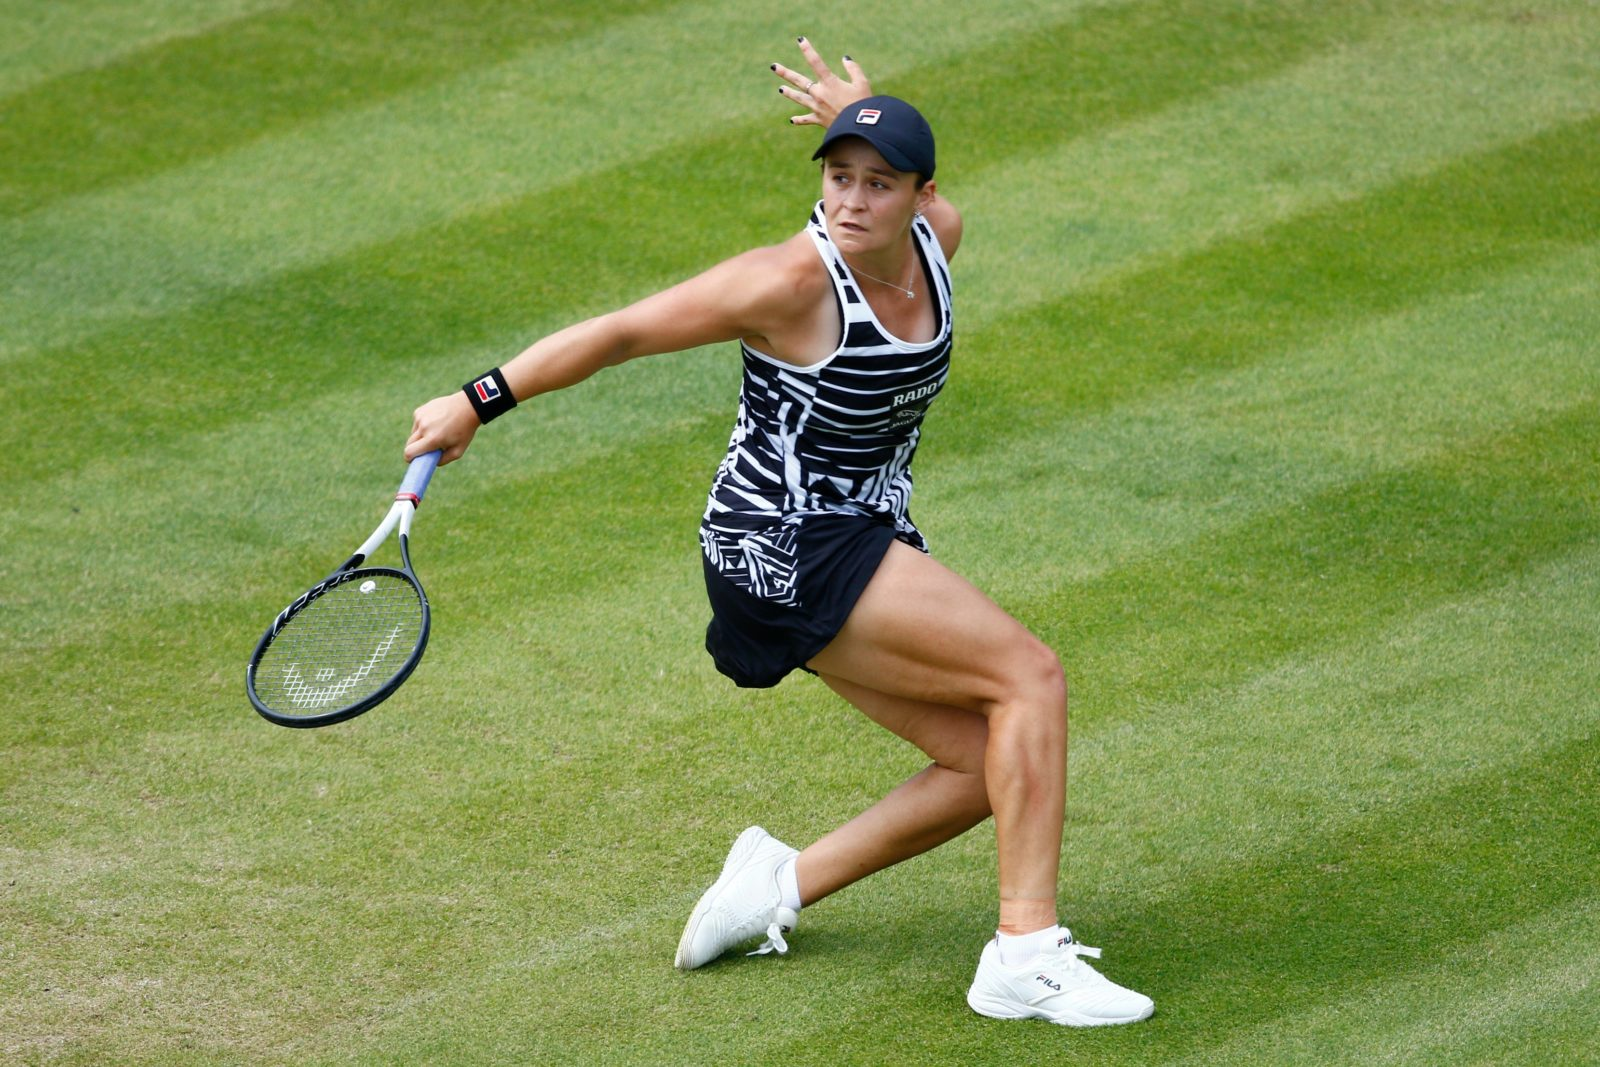 Ash Barty pulled off an incredible win in the final. Source: Getty.